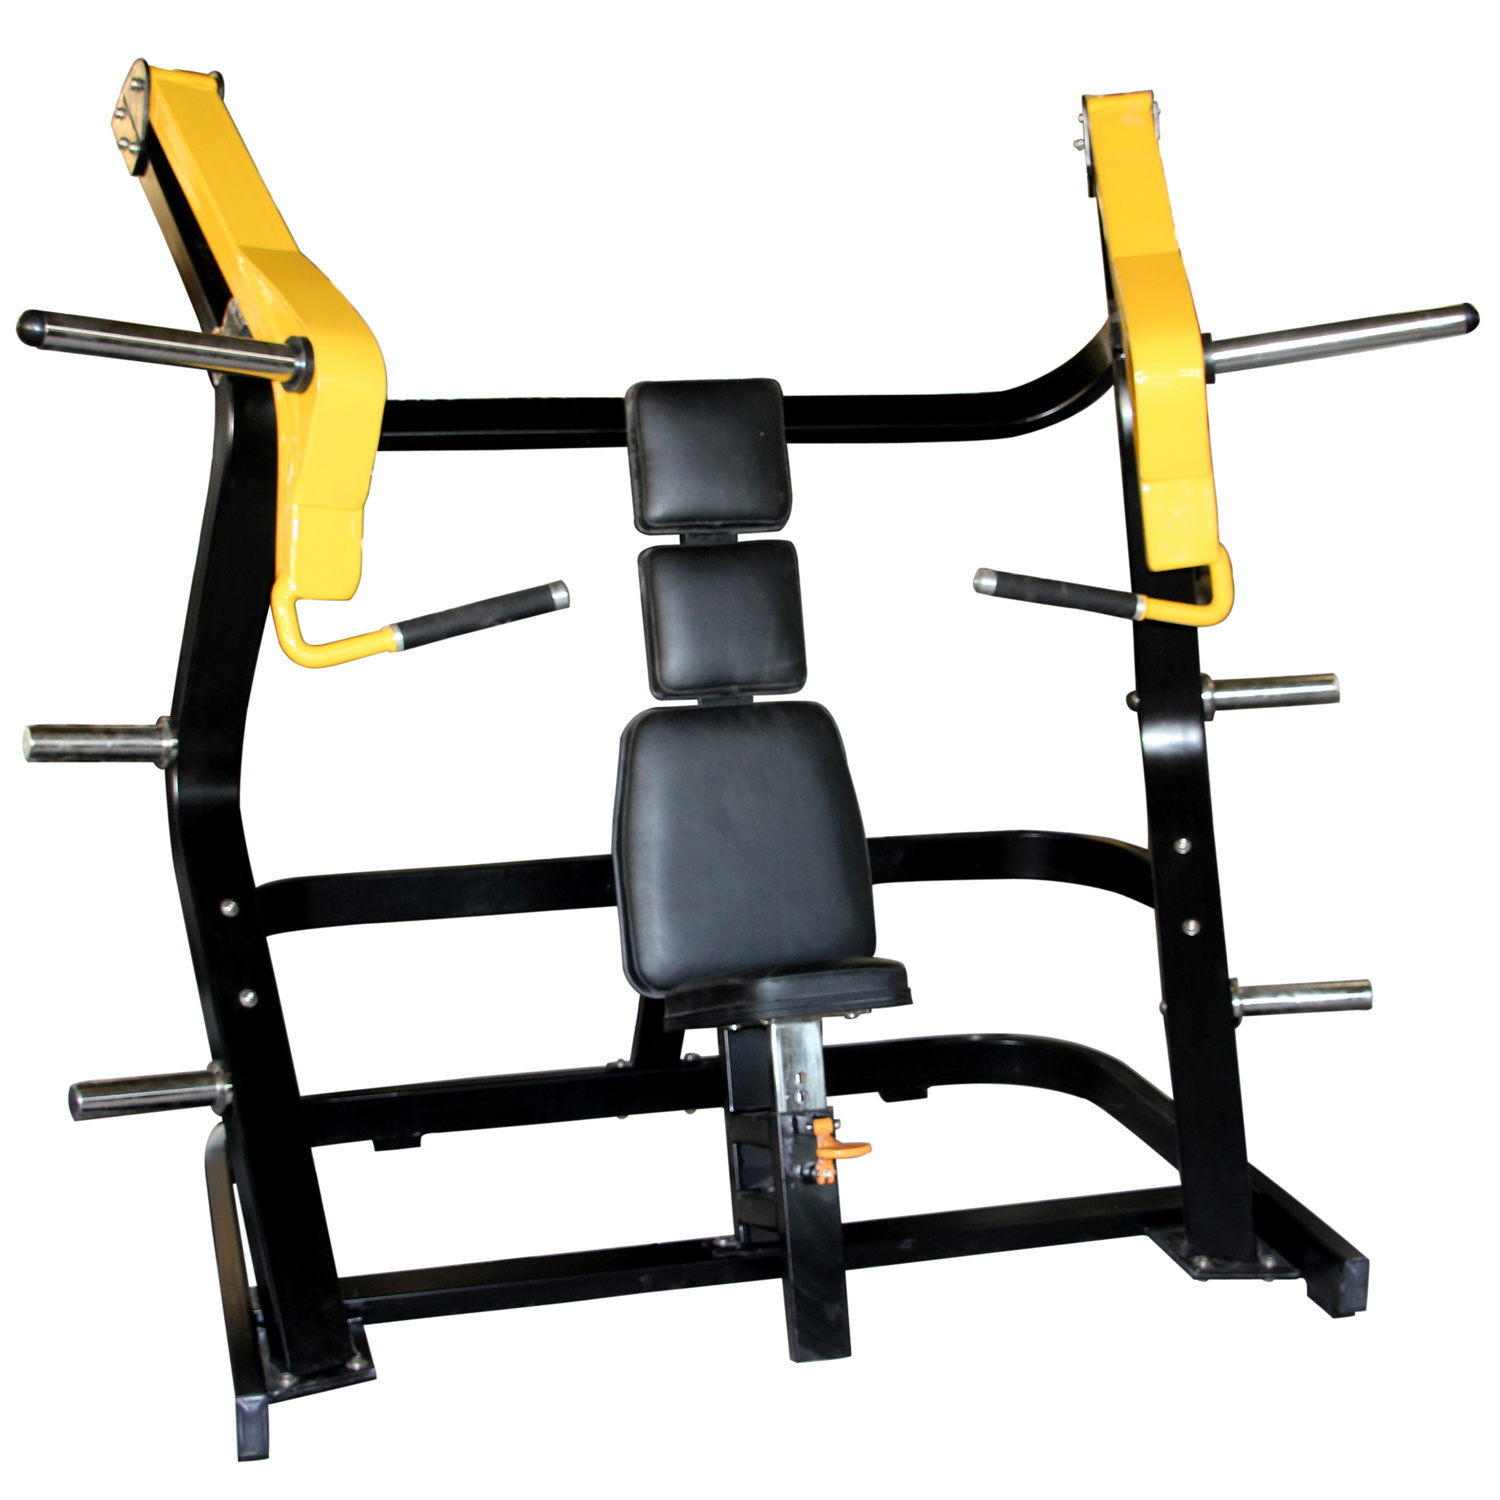 ISO-Lateral Incline Chest Press Fitness Equipment Hammer Strength Body-Building